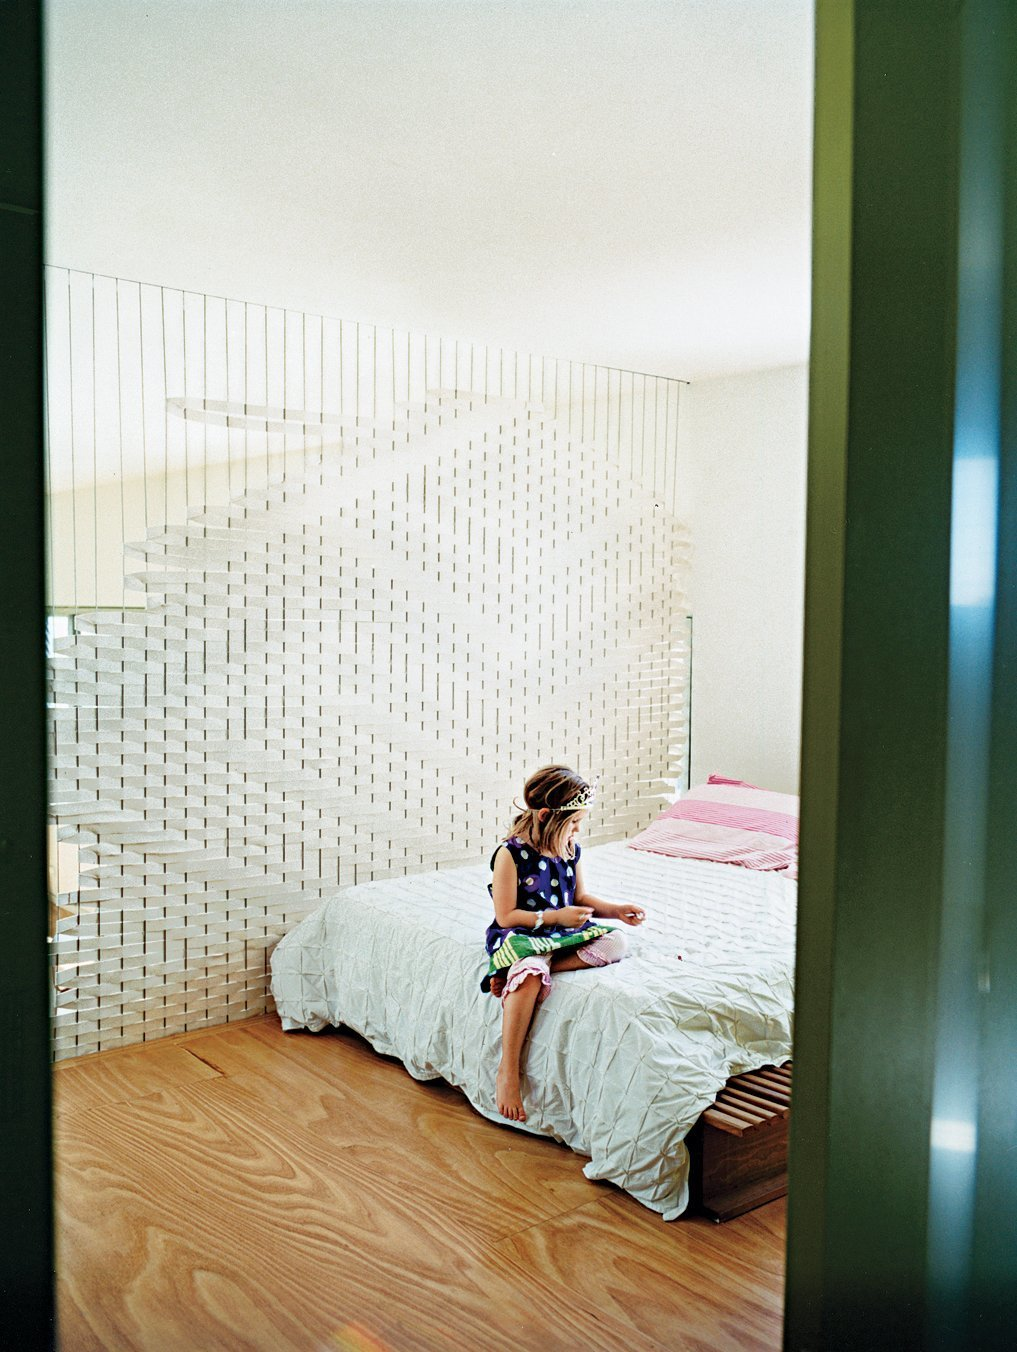 Bedroom Architect-sculptor double act Cat Macleod and Michael Bellemo's Melbourne split-level home has a loft bedroom with a clever divider Macleod created out of white weaved engineering felt.  Photo 8 of 11 in 11 Hidden Beds in Small Homes